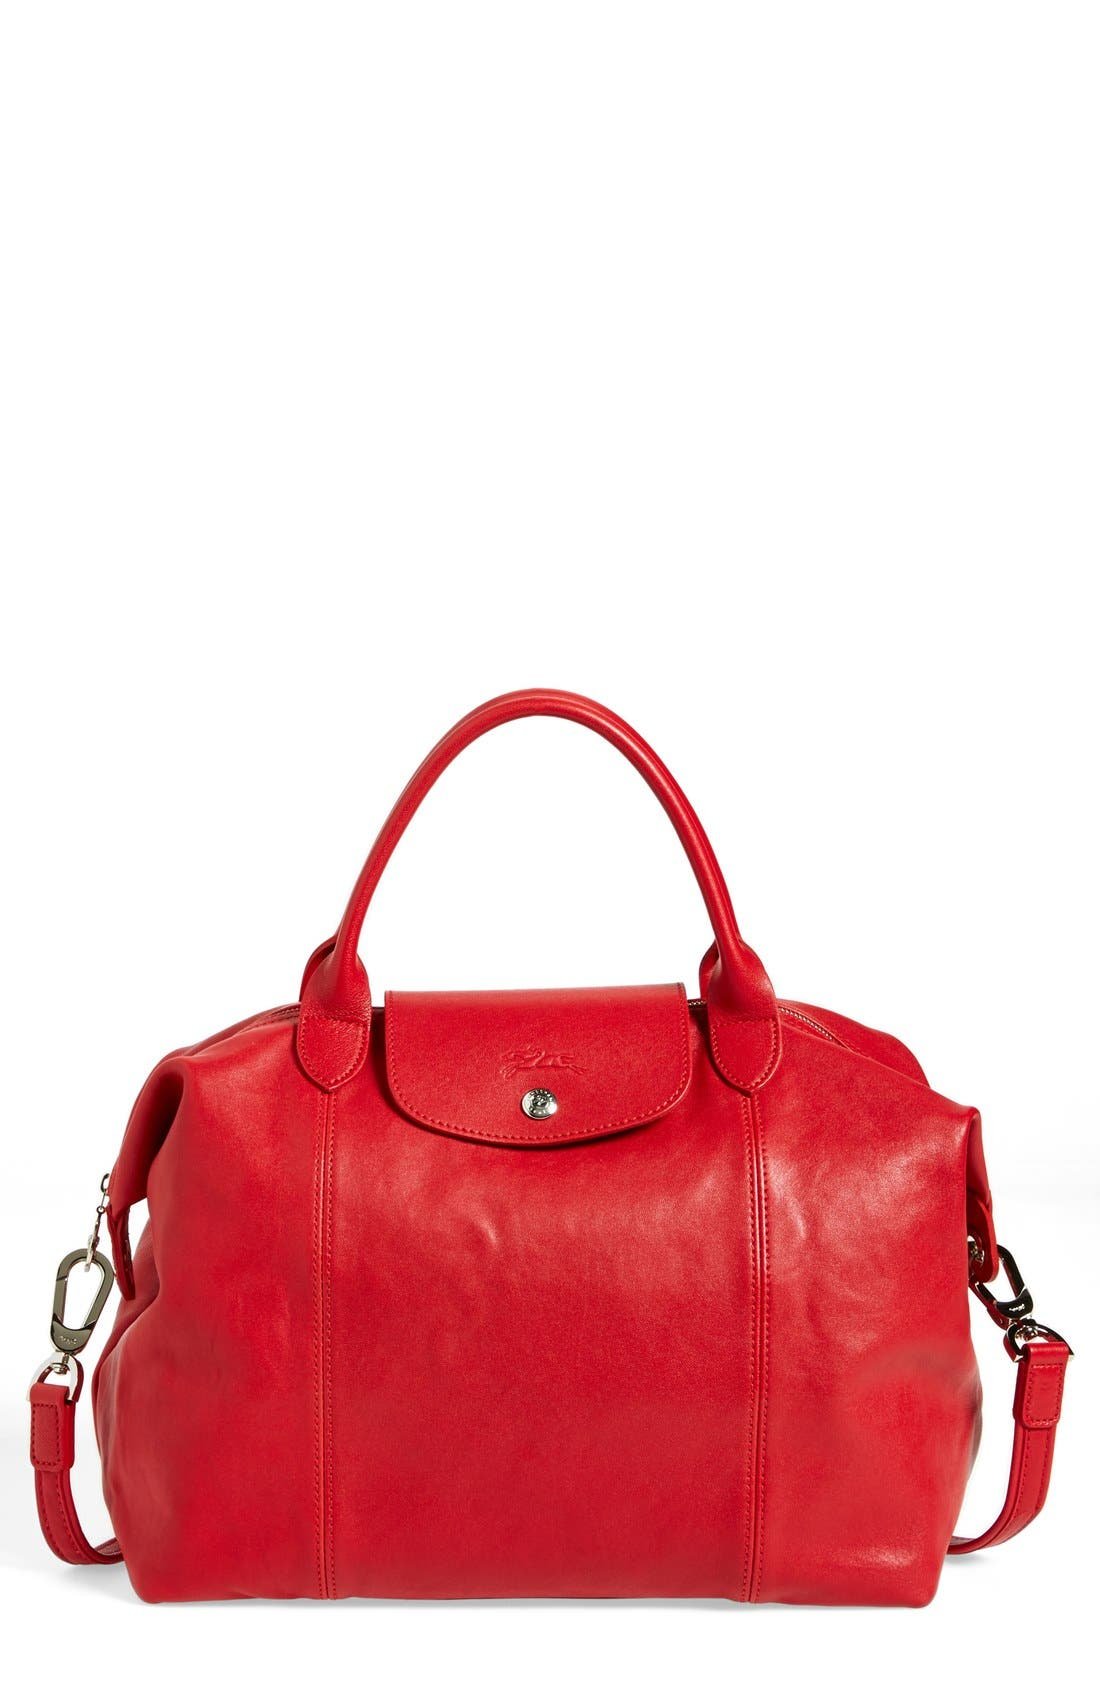 Medium 'Le Pliage Cuir' Leather Top Handle Tote,                             Main thumbnail 24, color,